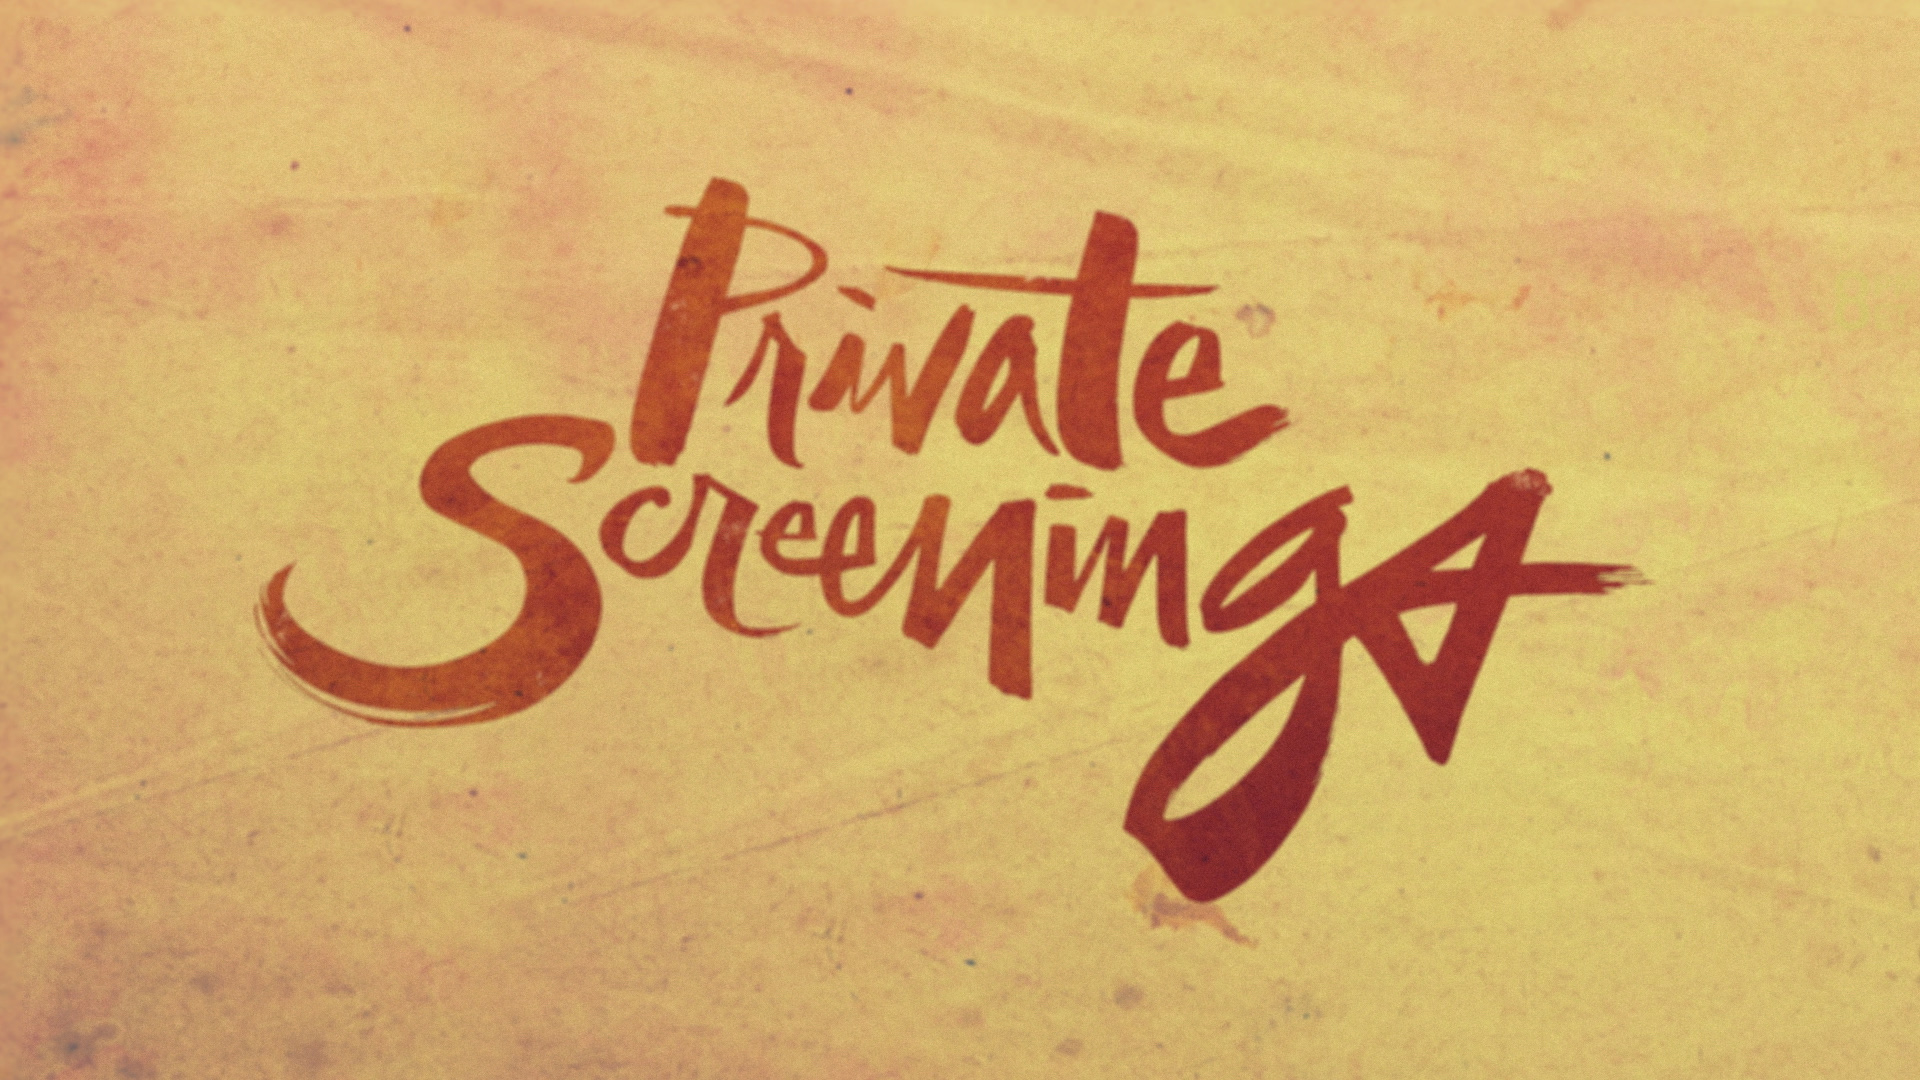 tcm_02_privatescreenings2